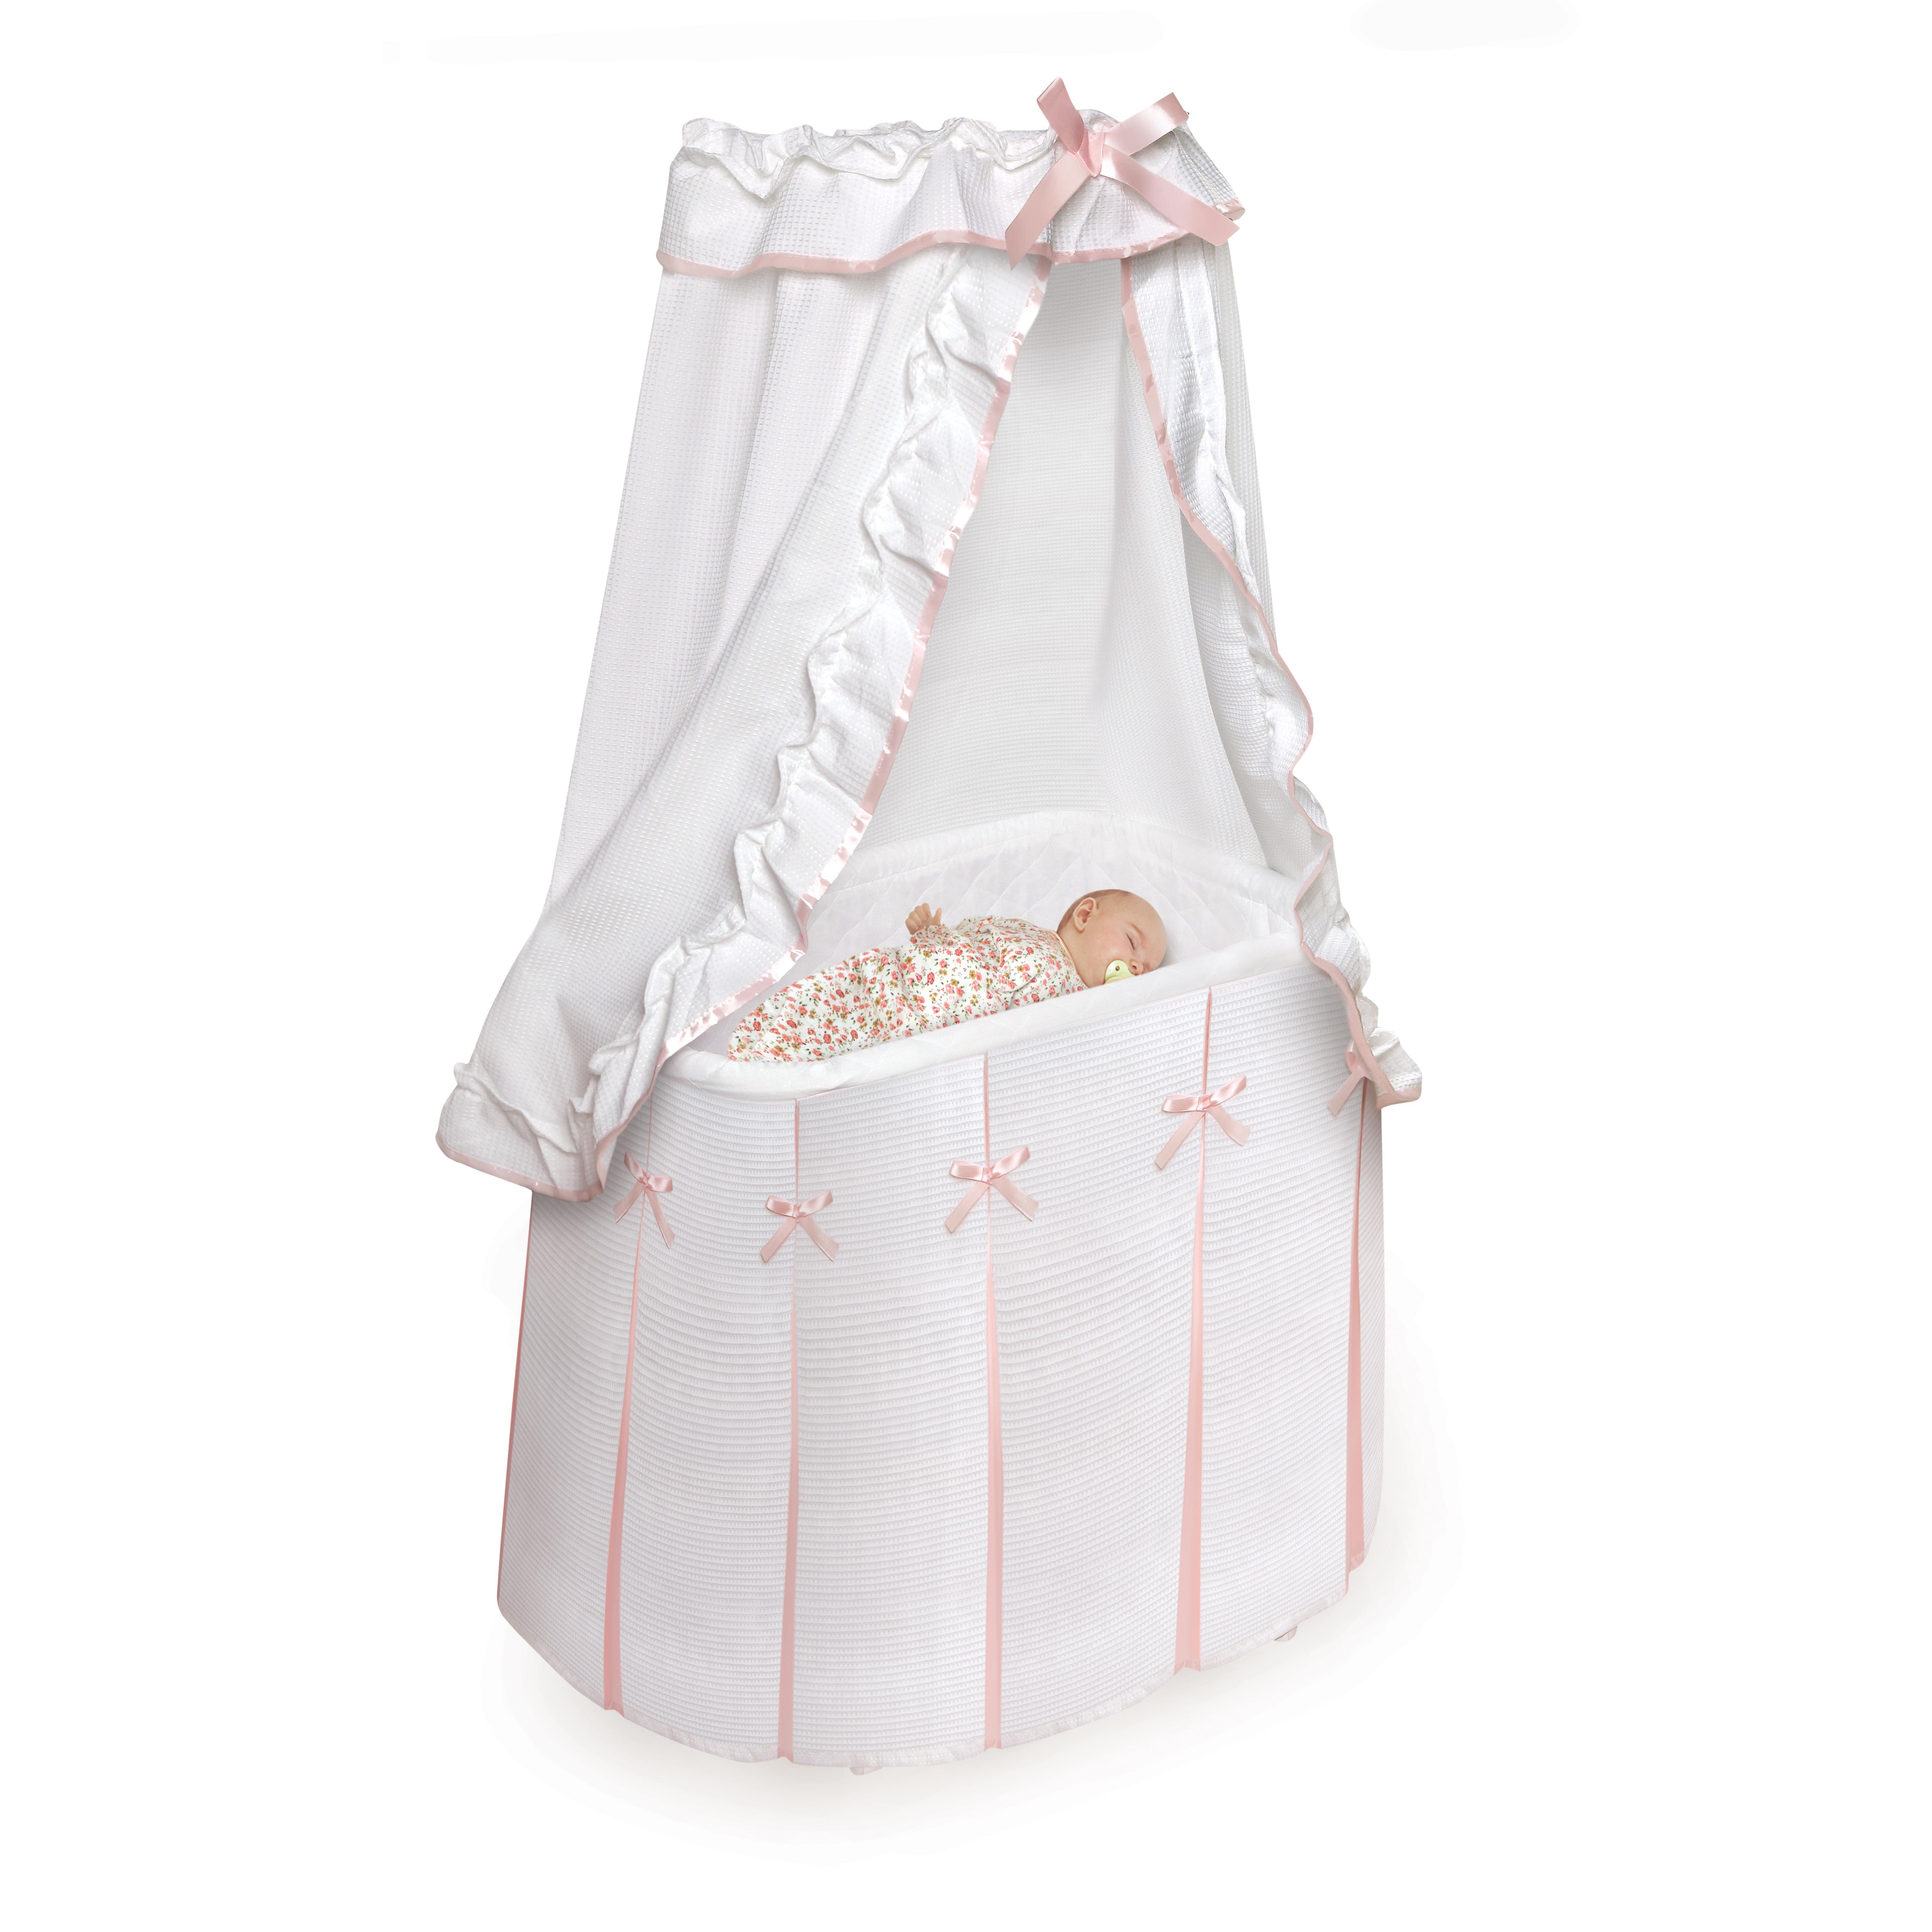 Badger basket majesty baby bassinet with canopy reviews for Baby bassinet